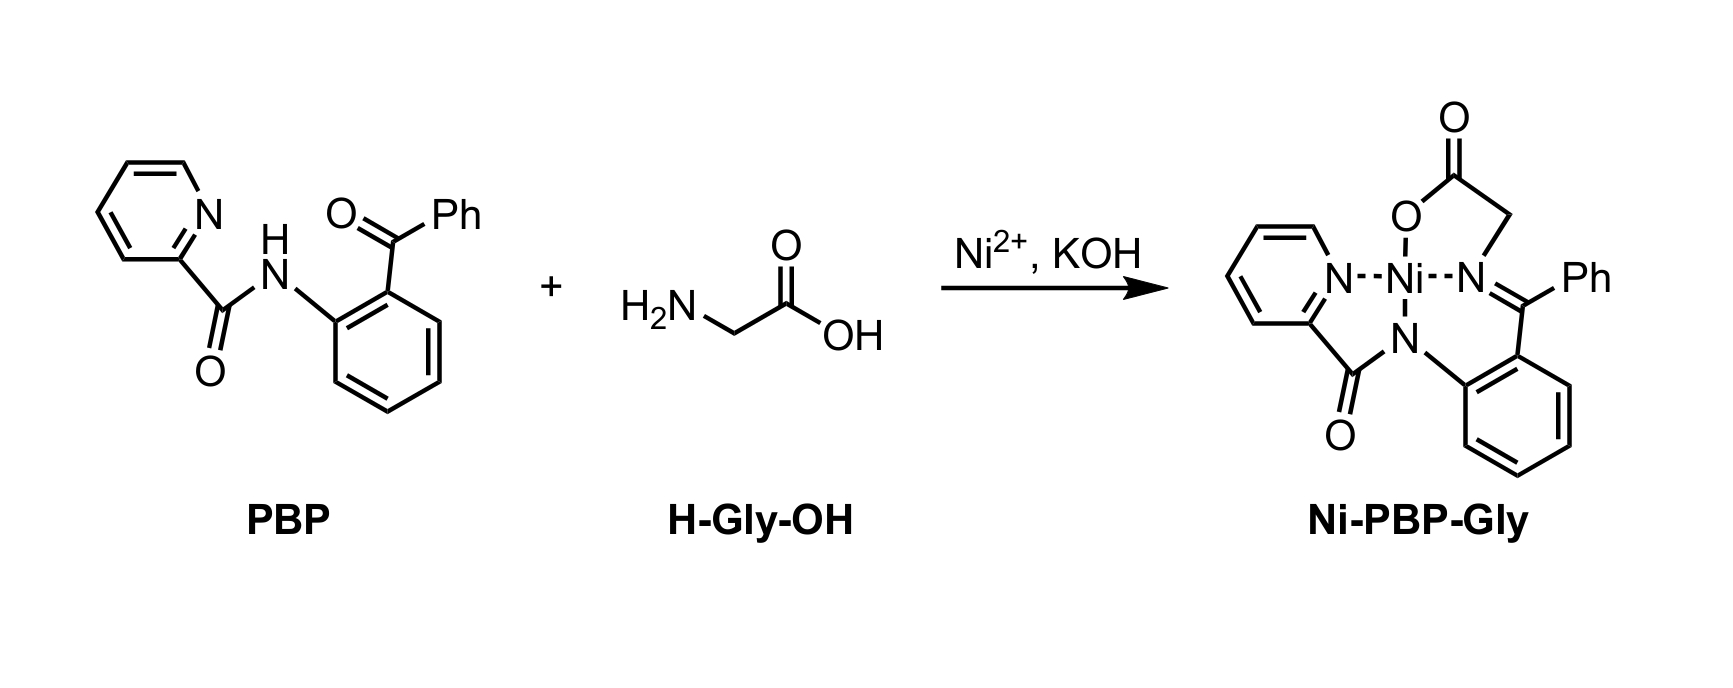 Hydrolysis of a Ni-Schiff-Base Complex Using Conditions